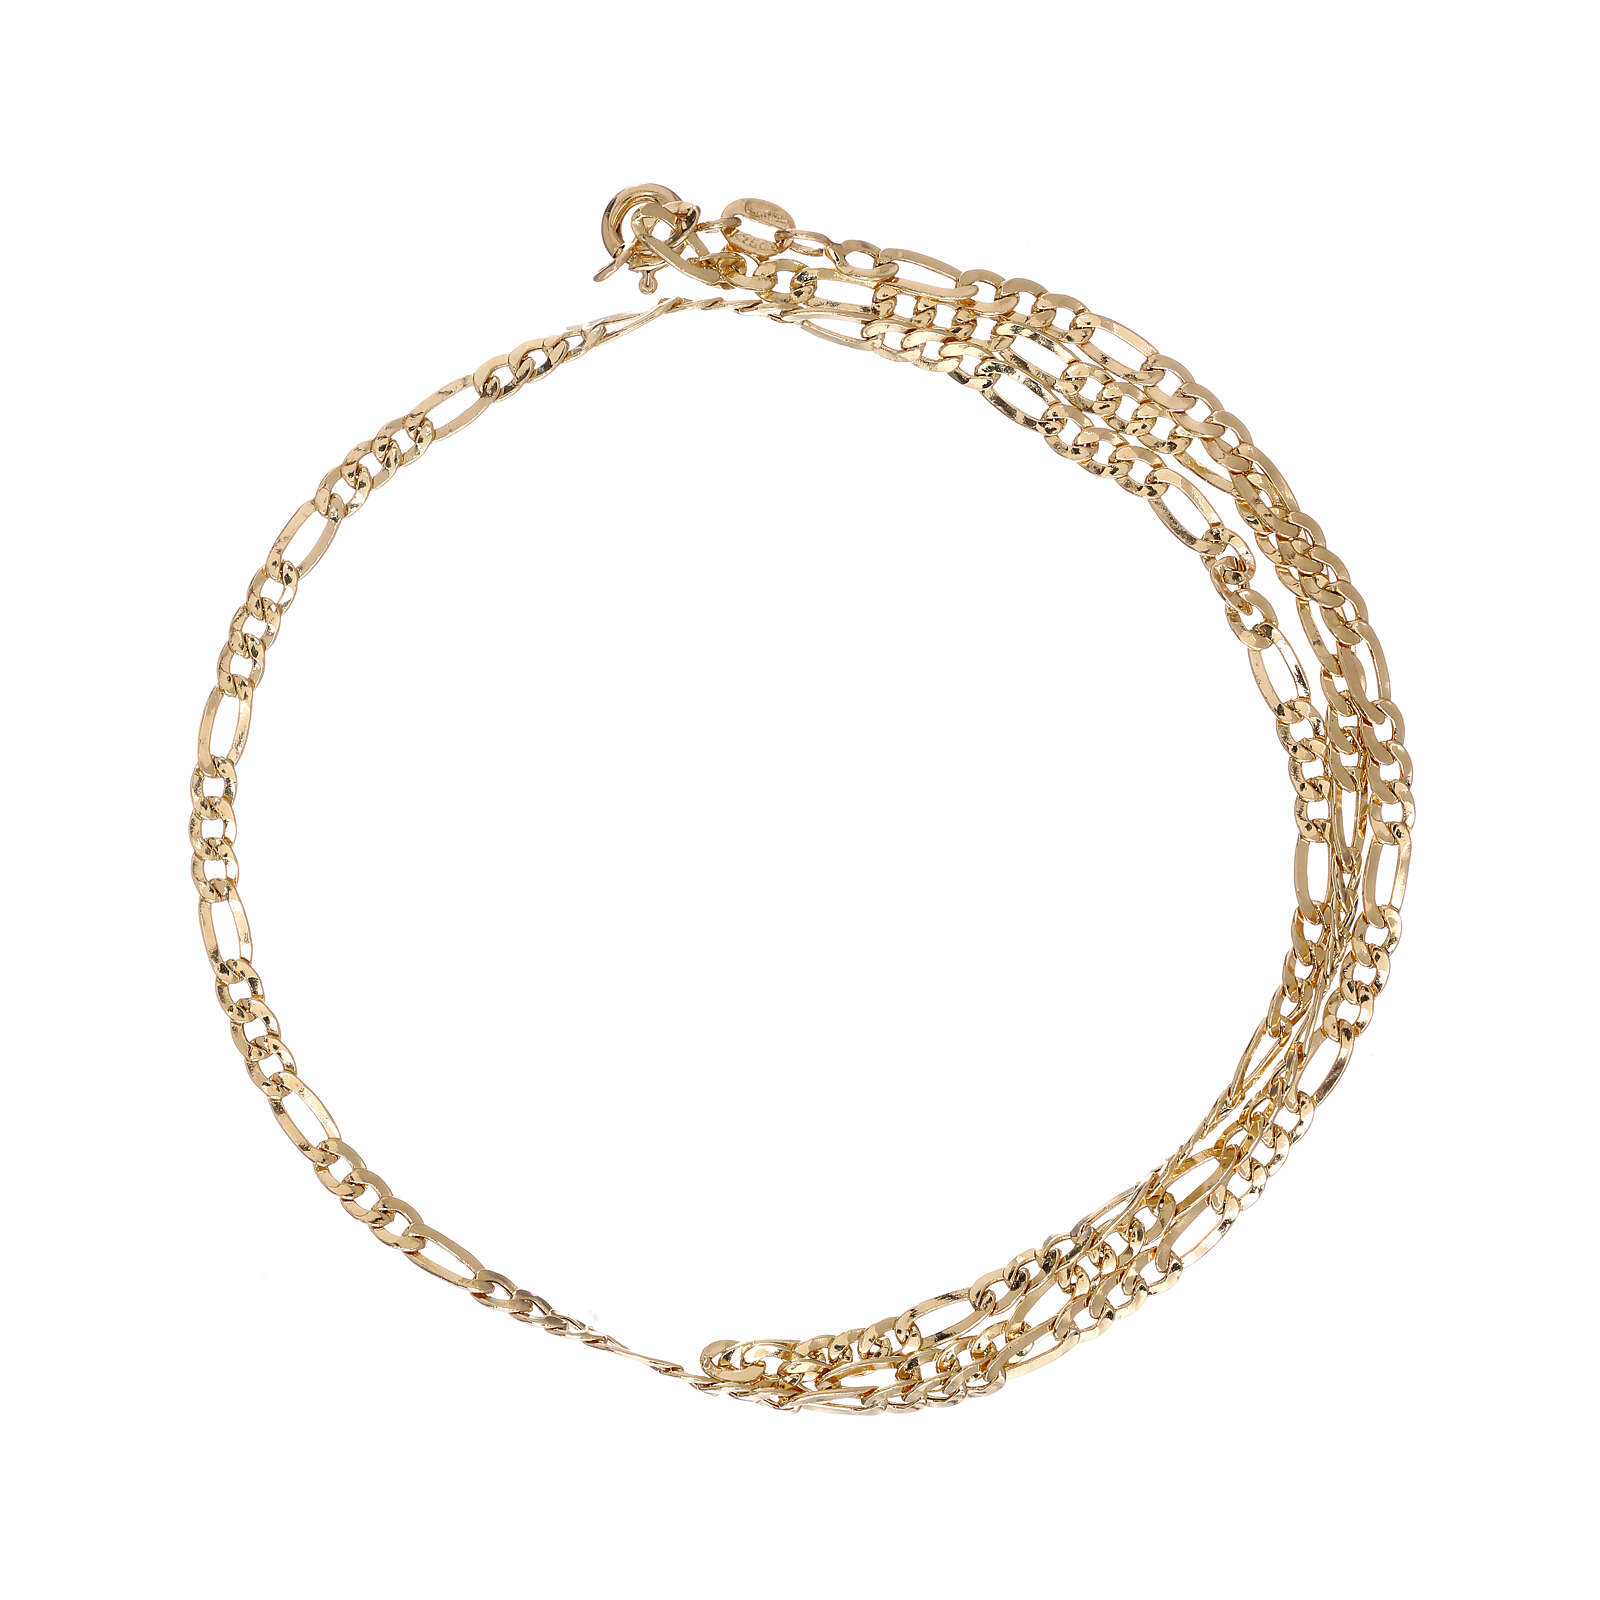 Chain, three plus one model, in 18K yellow gold 50 cm 4